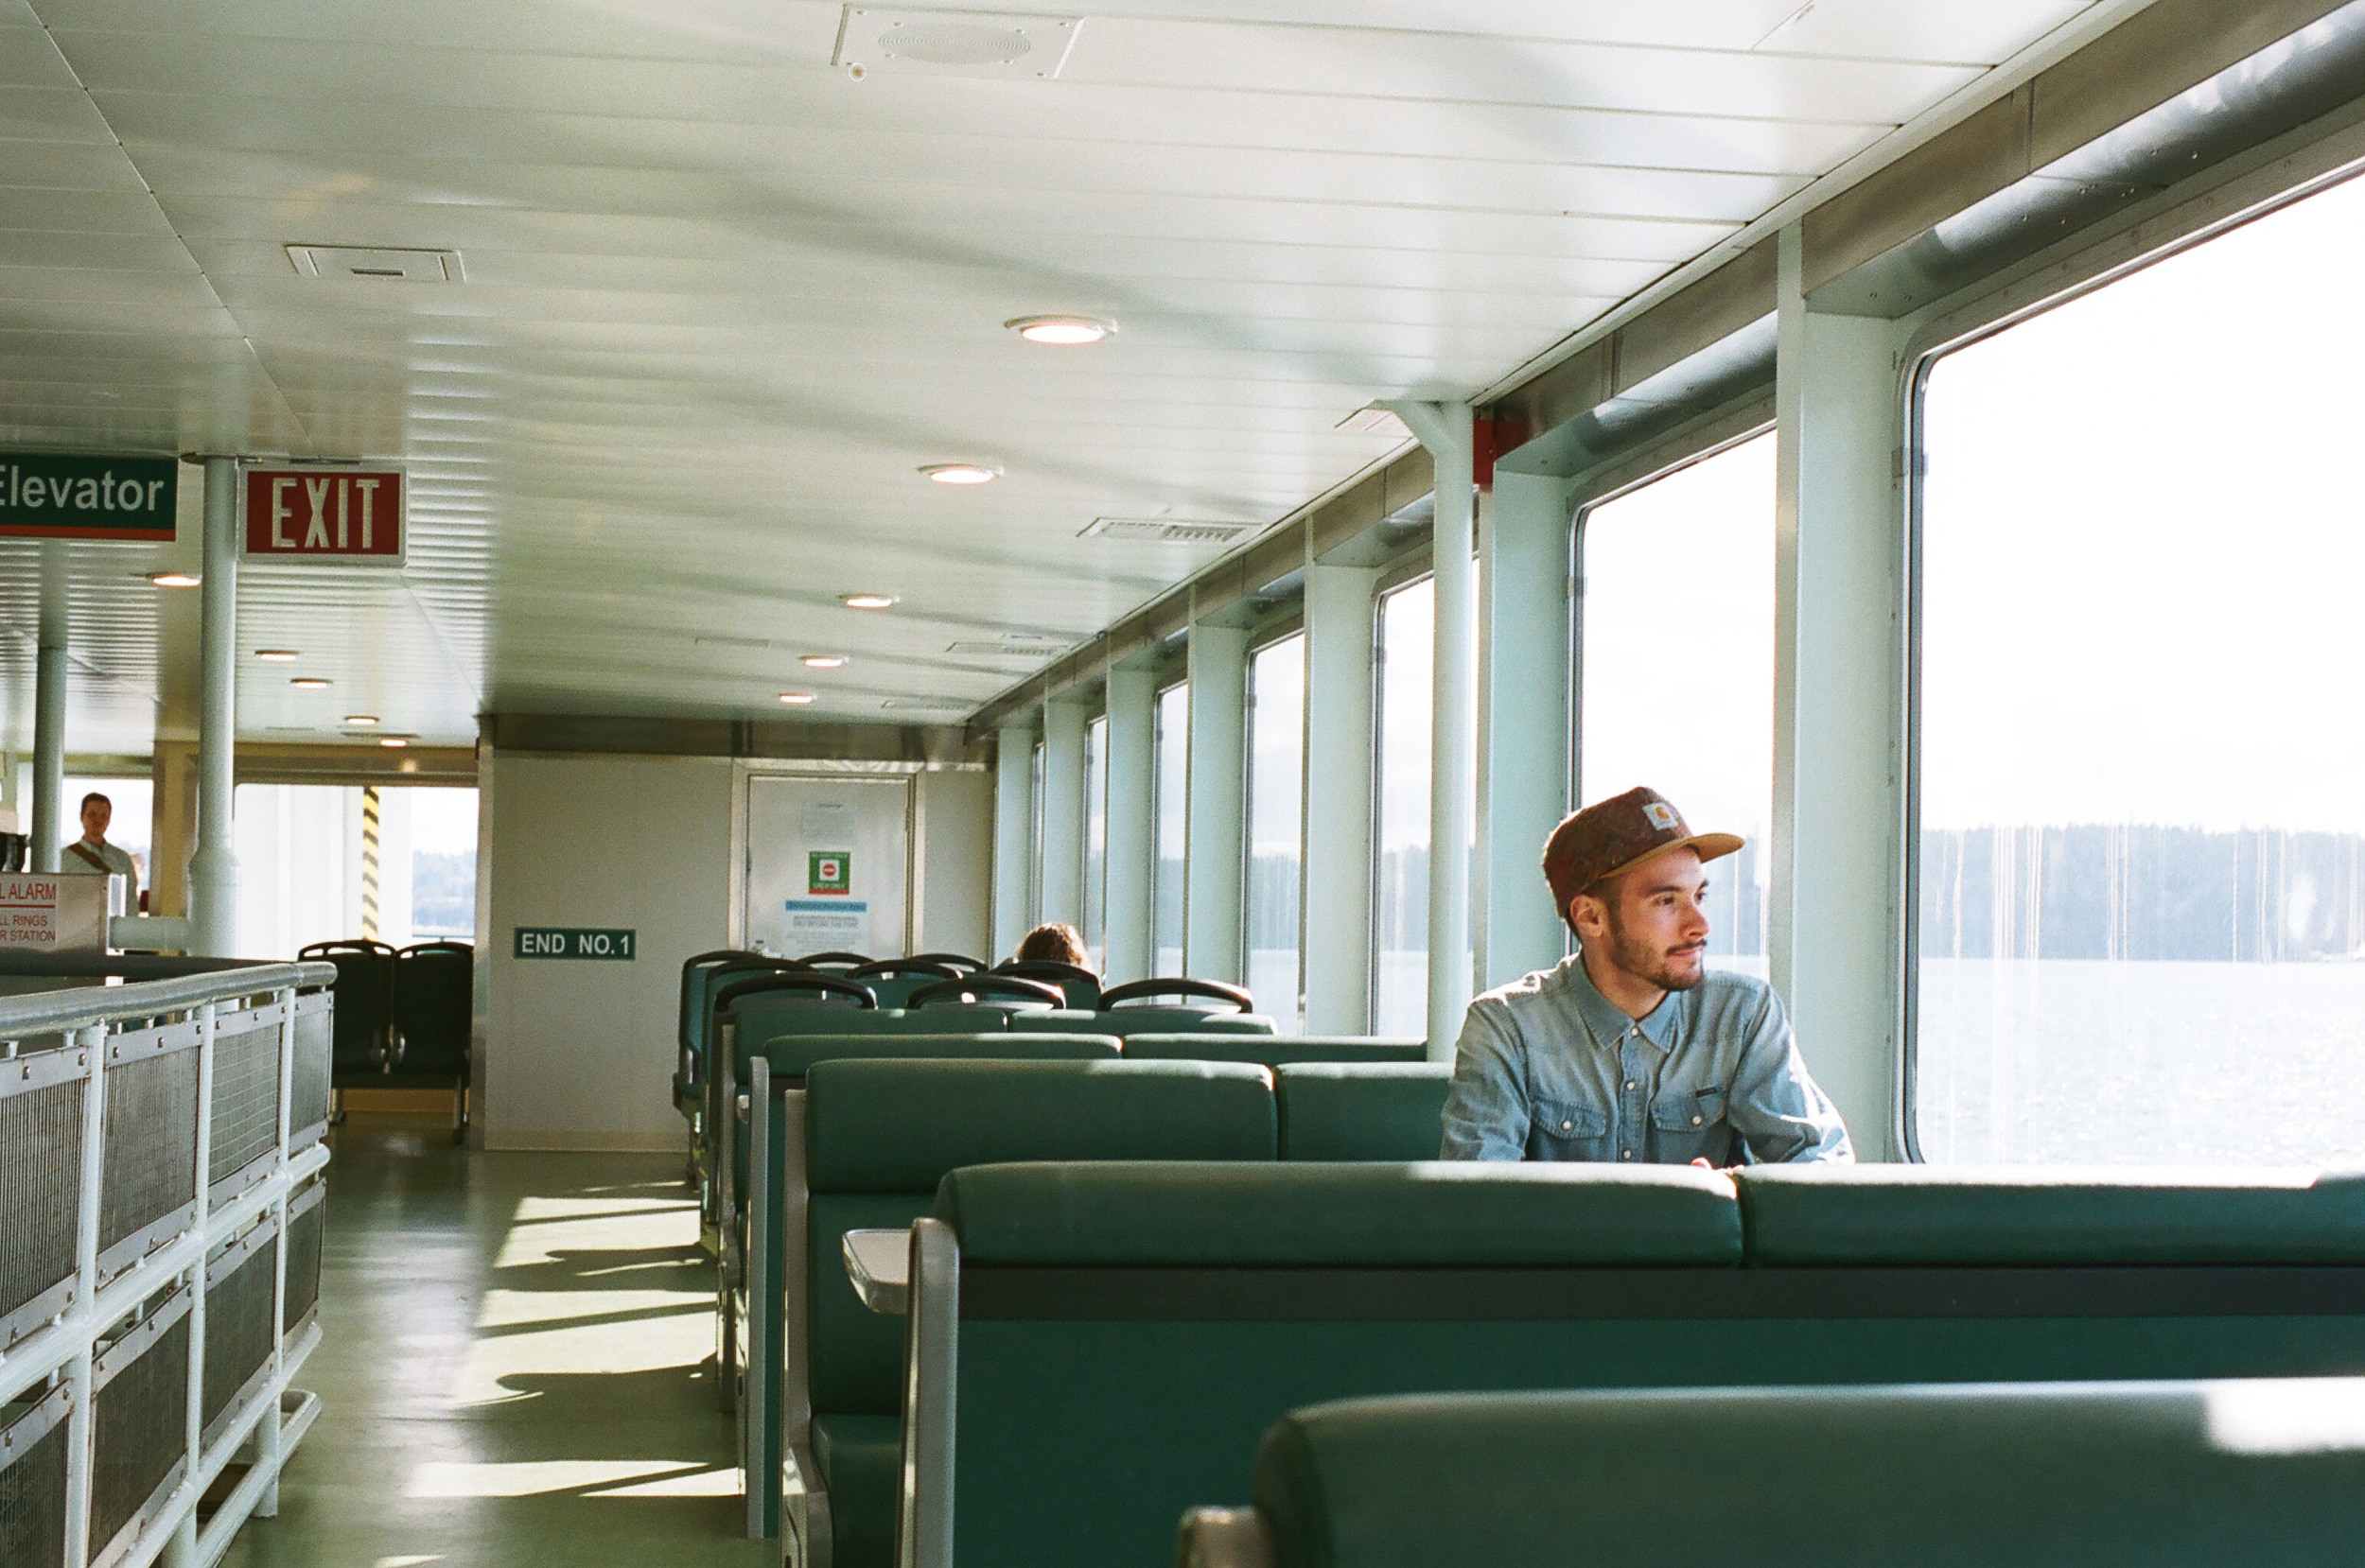 Ferry rides are good for thinking.